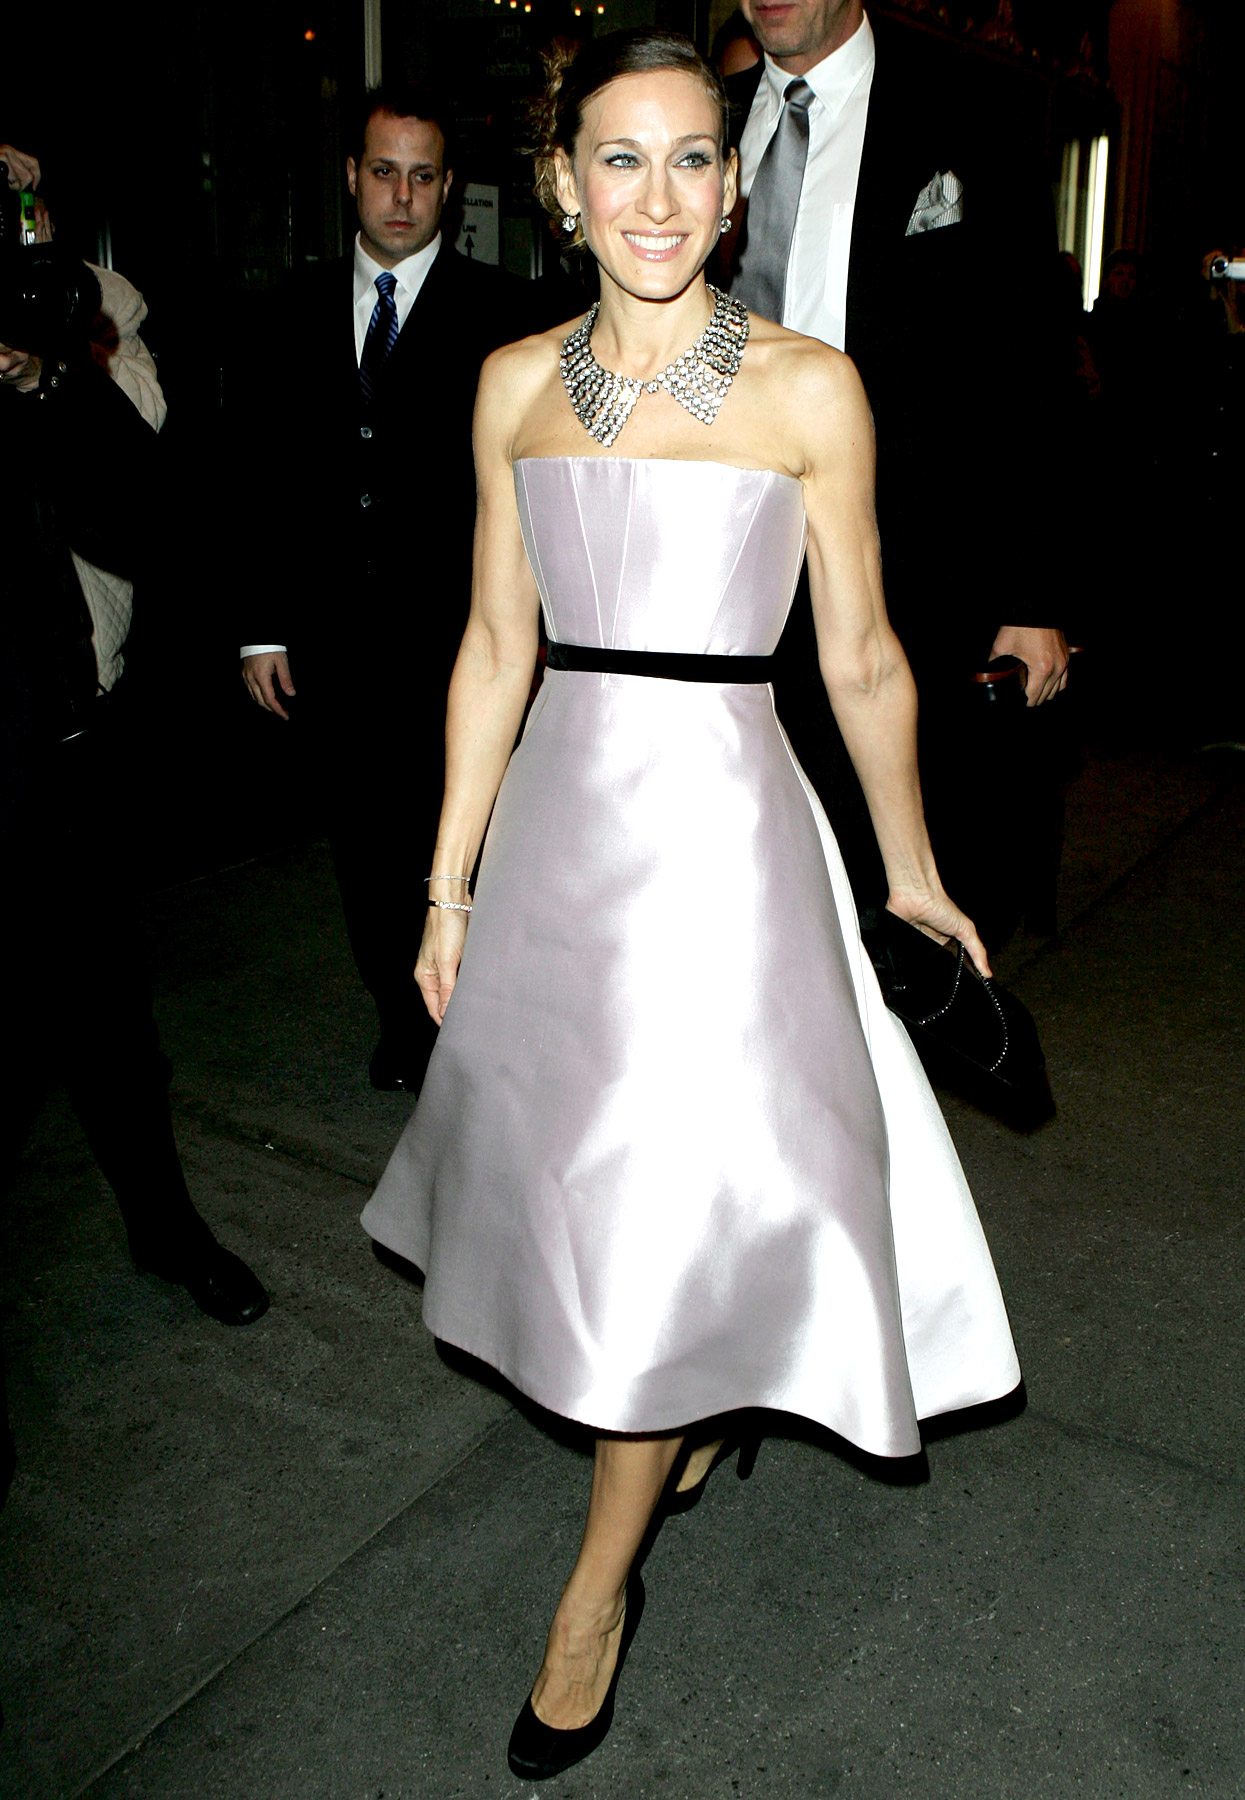 Stunning in satin! The Broadway veteran's simple, strapless pink Peter Soronen gown at the Odd Couple Broadway opener on Oct. 27, 2005, was given some New York flare with a bejeweled collar necklace and a chic updo.